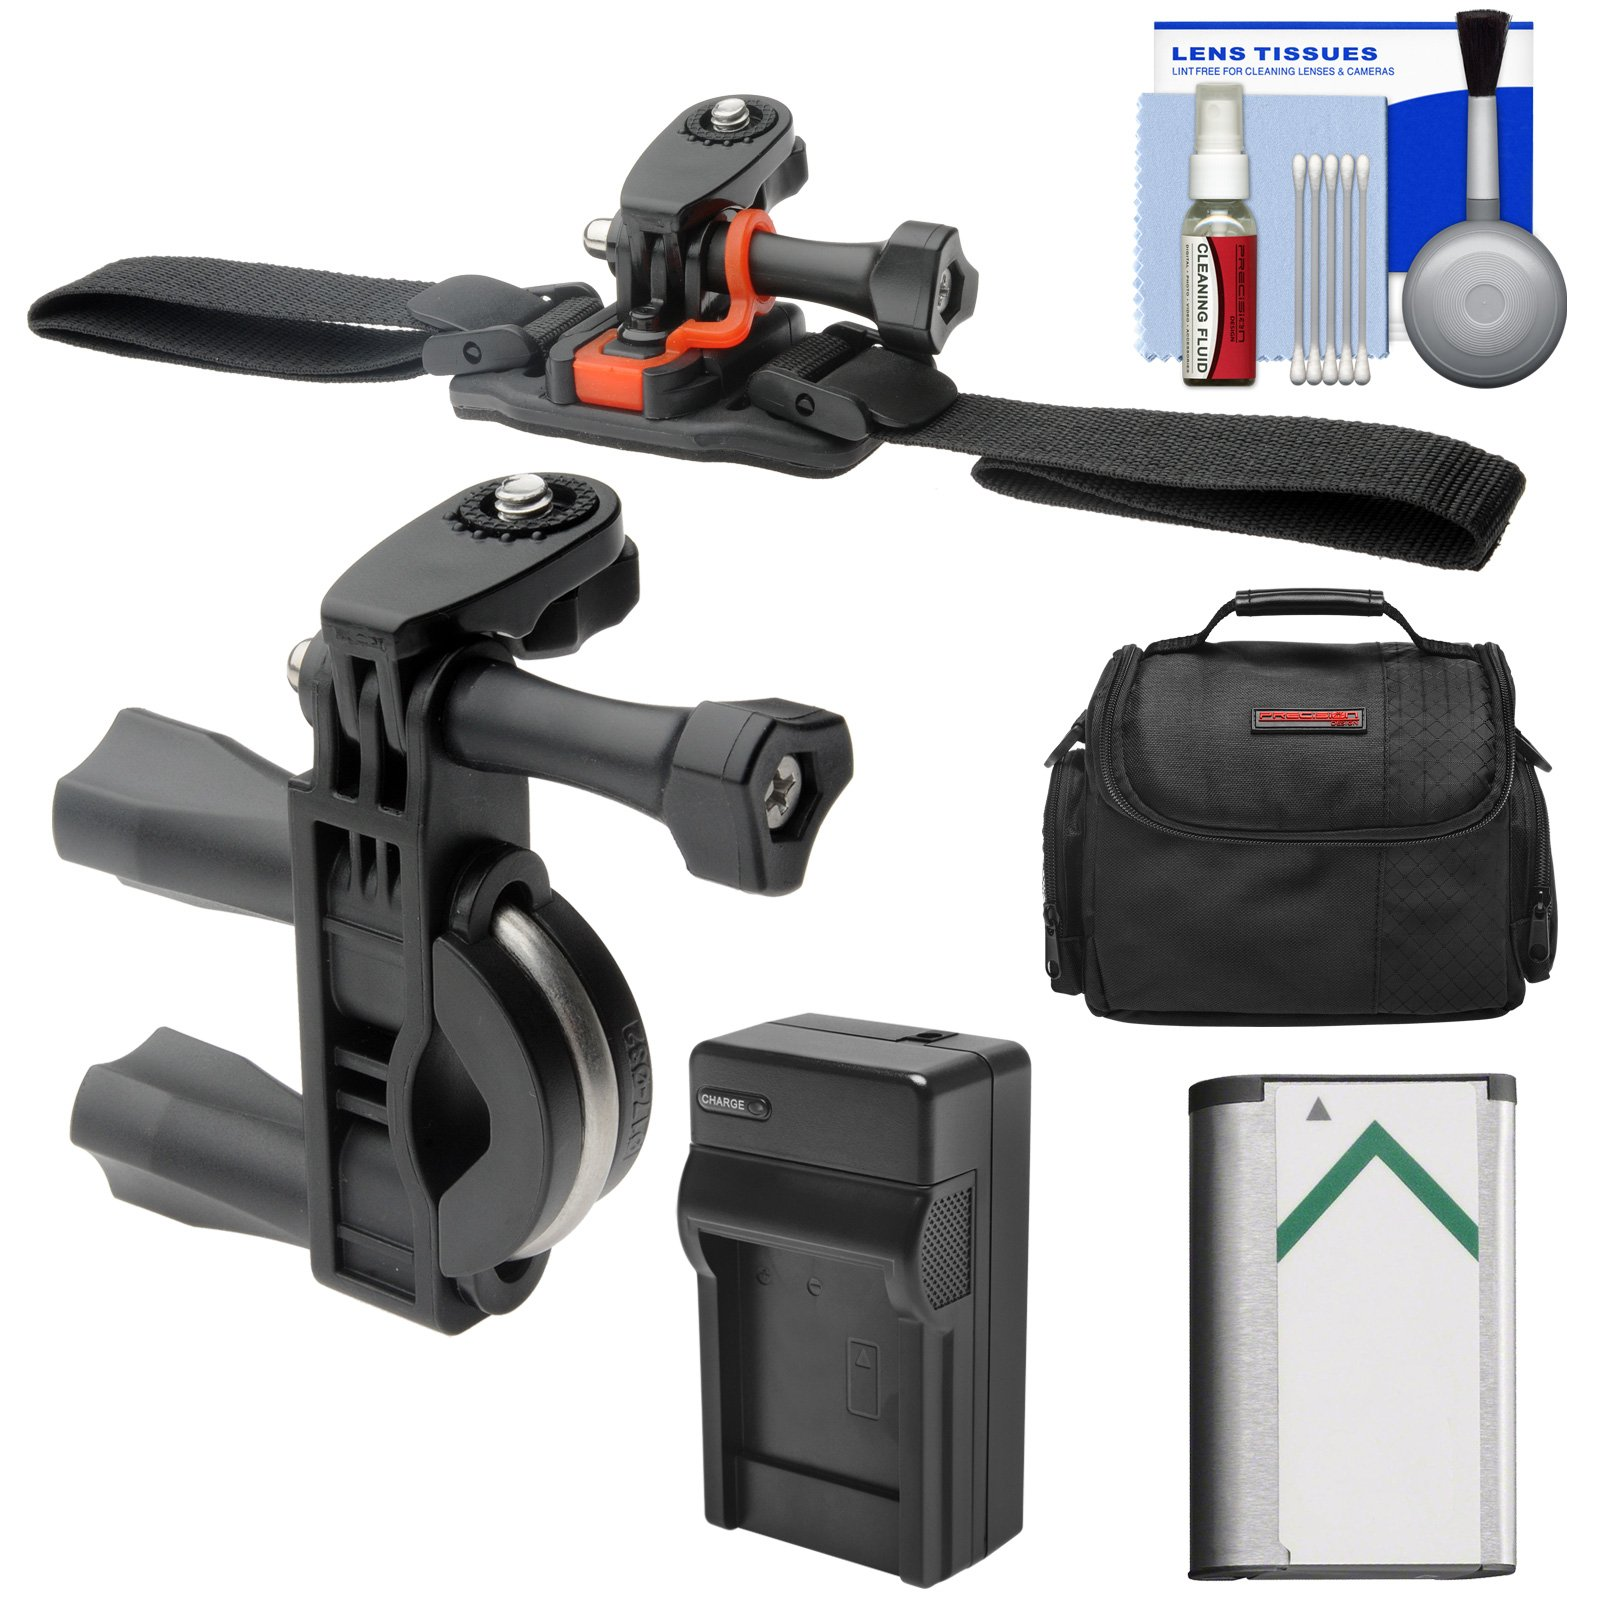 Essentials Bundle for Sony Action Cam HDR-AS50, AS200, AS300, FDR-X1000V & X3000 Camcorder with Handlebar Bike & Vented Helmet Mounts + Battery + Charger + Case + Accessory Kit